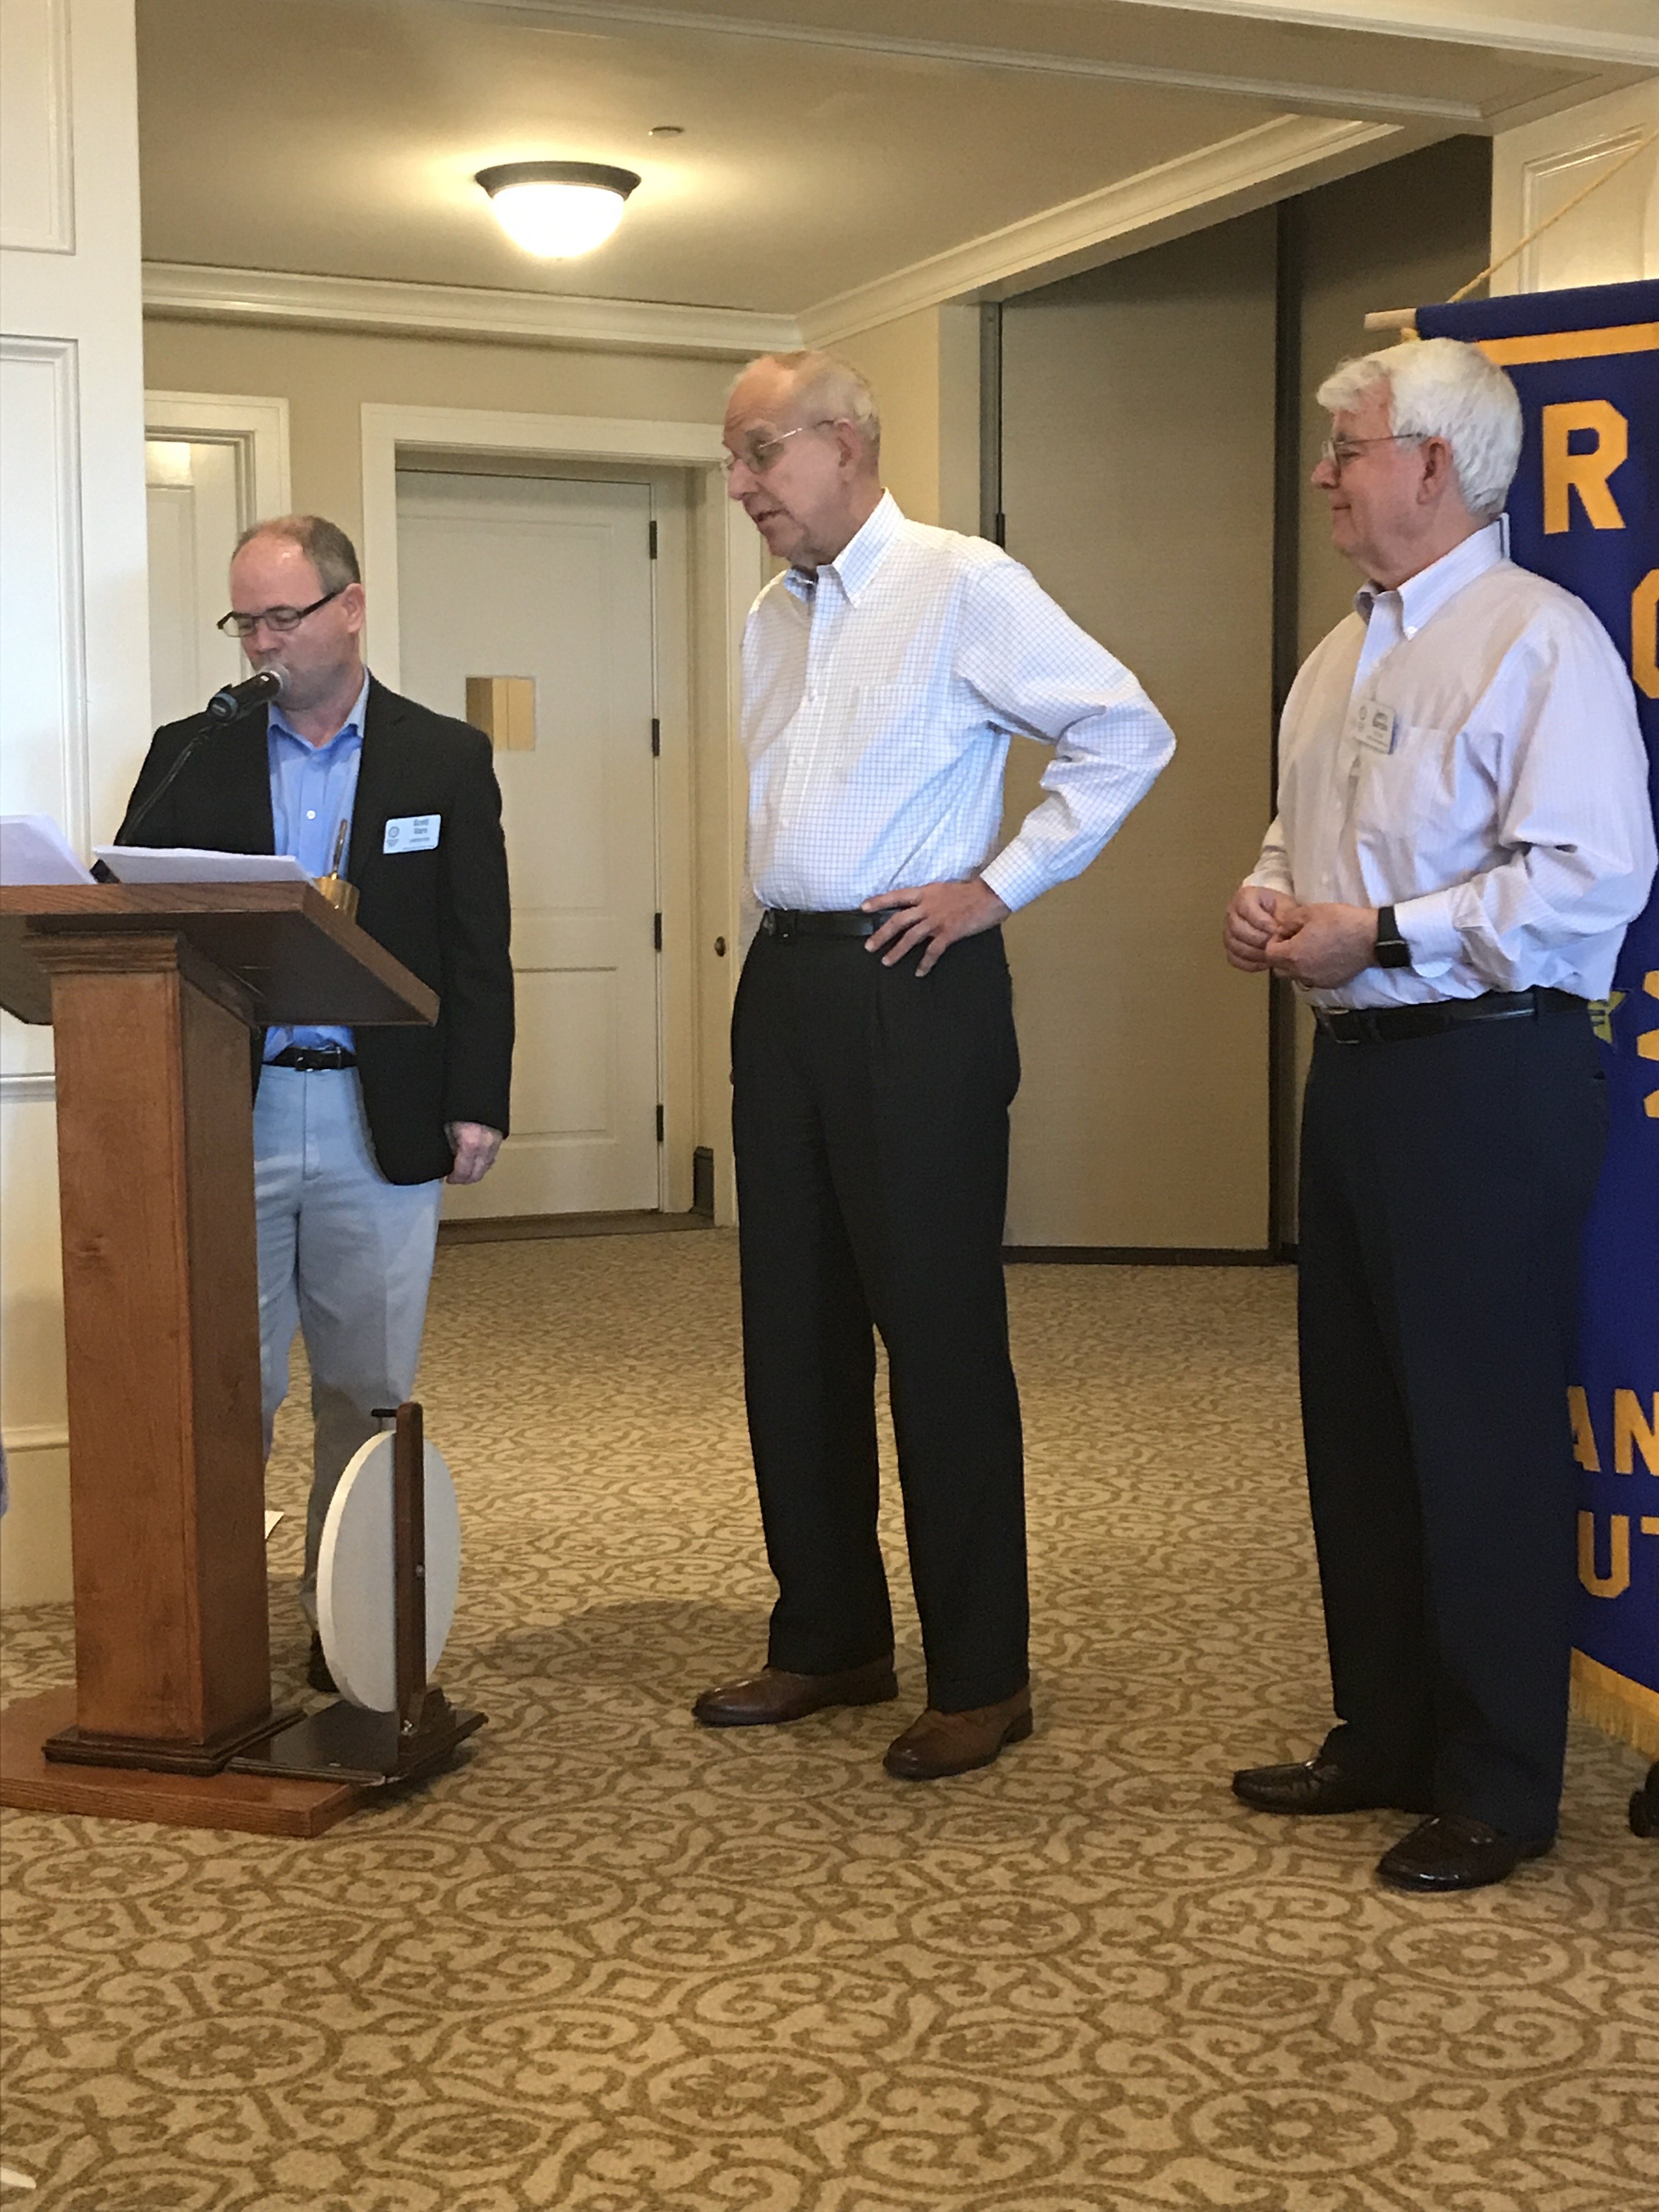 L-R: Rotary Club President Scott Varn with new member Dr. Bob Grubb and Dr. Grubb's sponsor, Jerry Bacon.